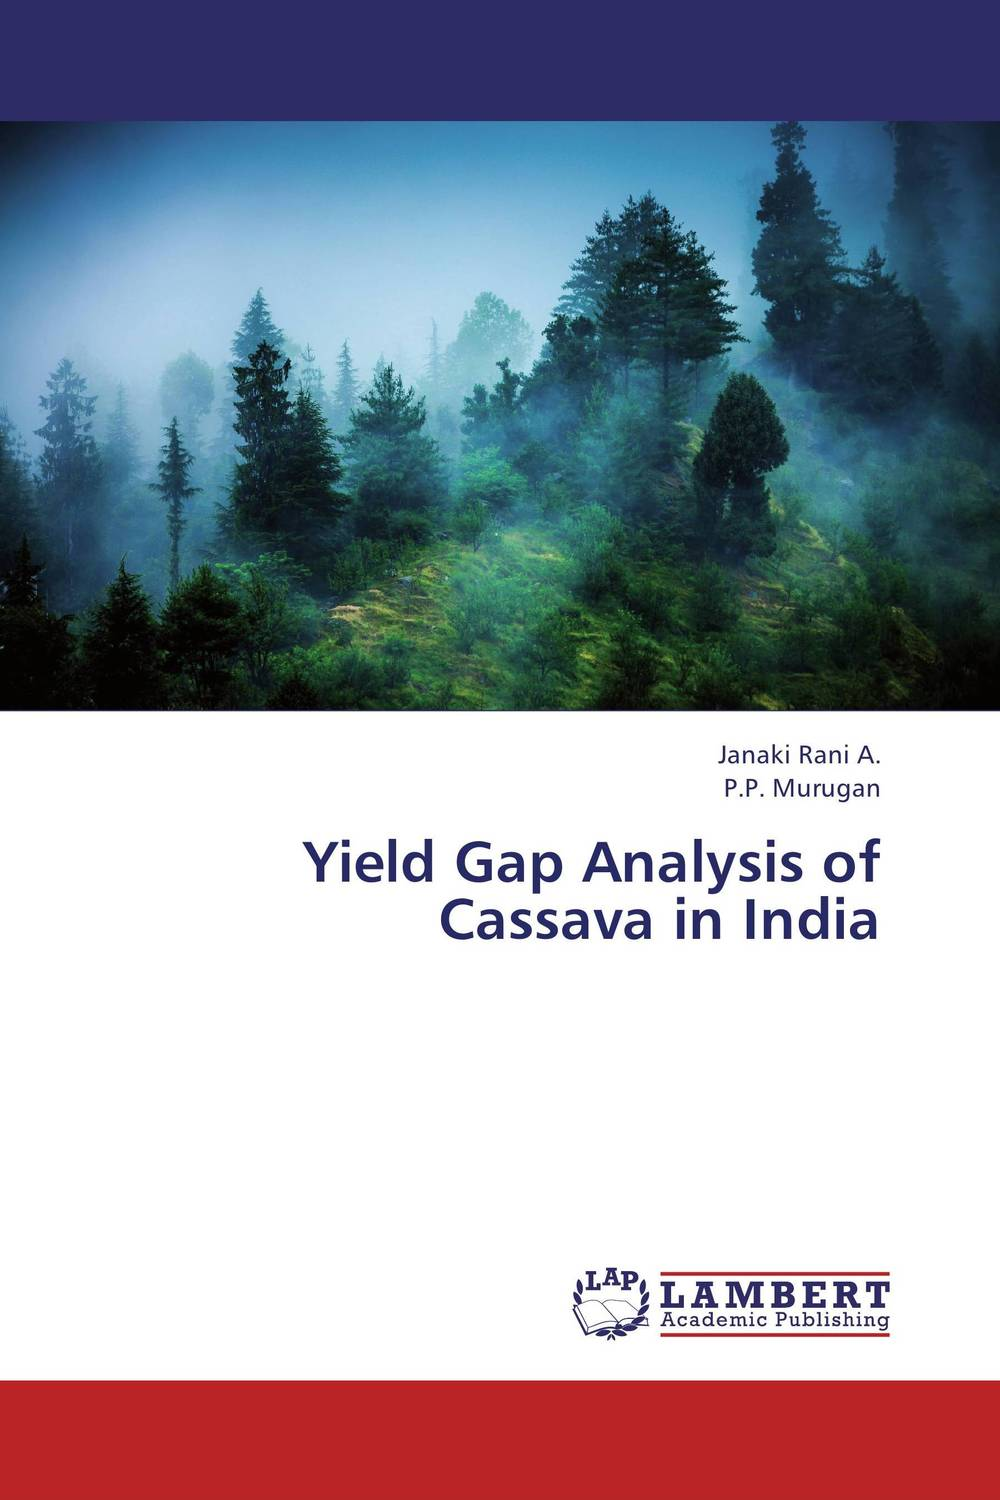 Yield Gap Analysis of Cassava in India